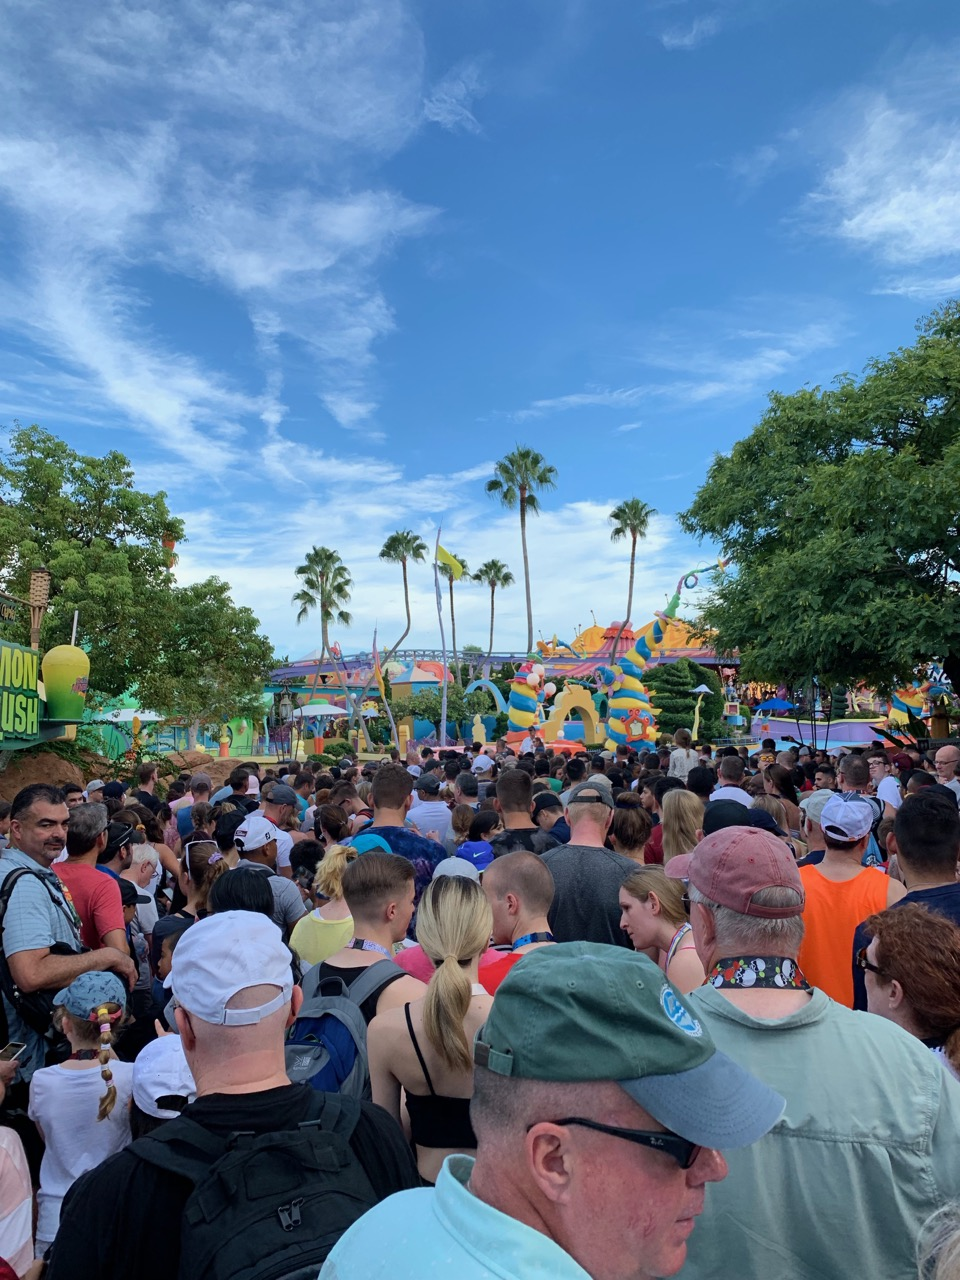 universal orlando summer 2019 trip report part 6 rope drop.jpeg